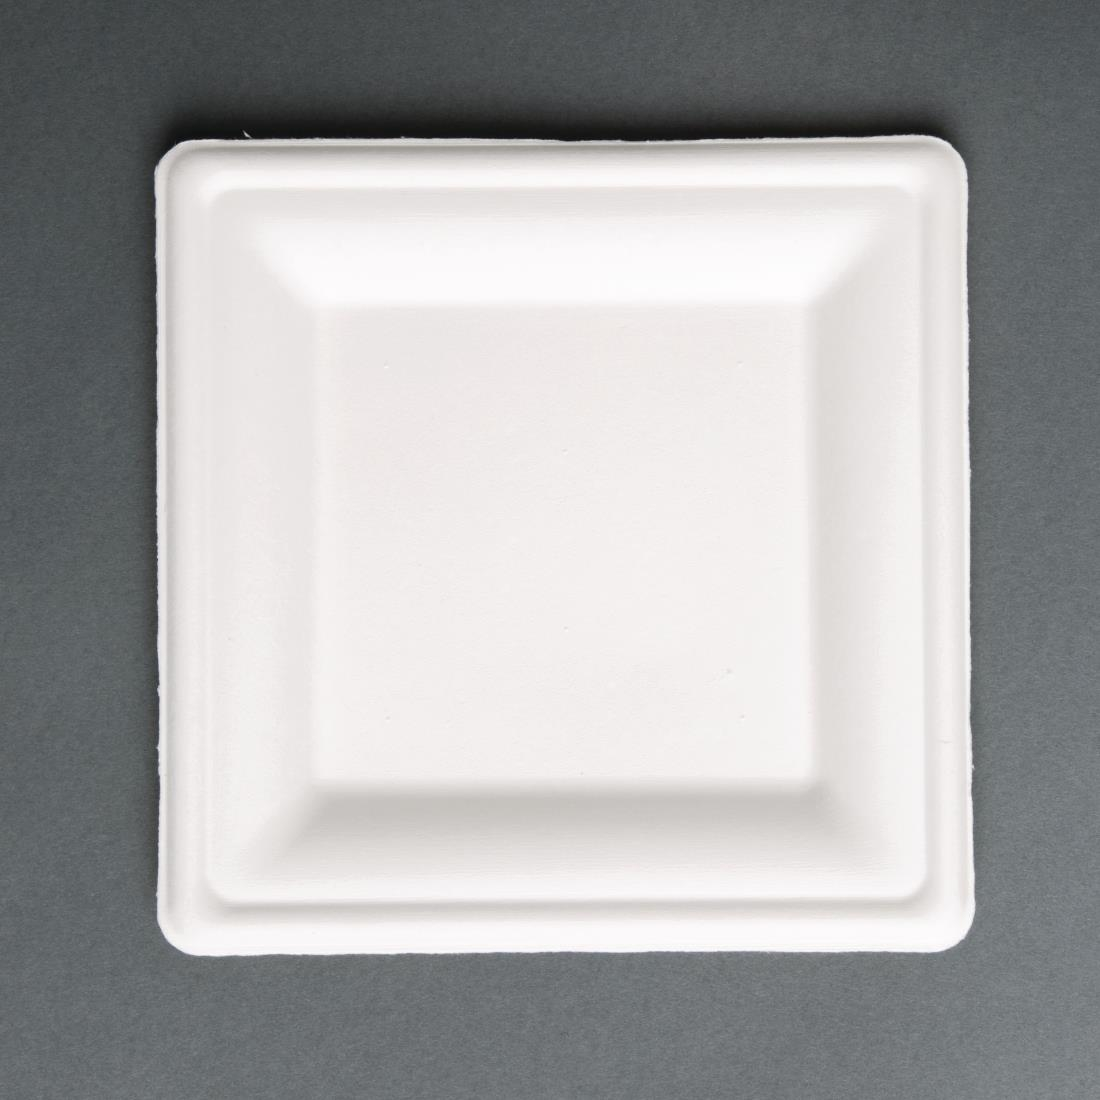 Image of Fiesta Green Compostable Bagasse Square Plates 261mm (Pack of 50) Pack of 50